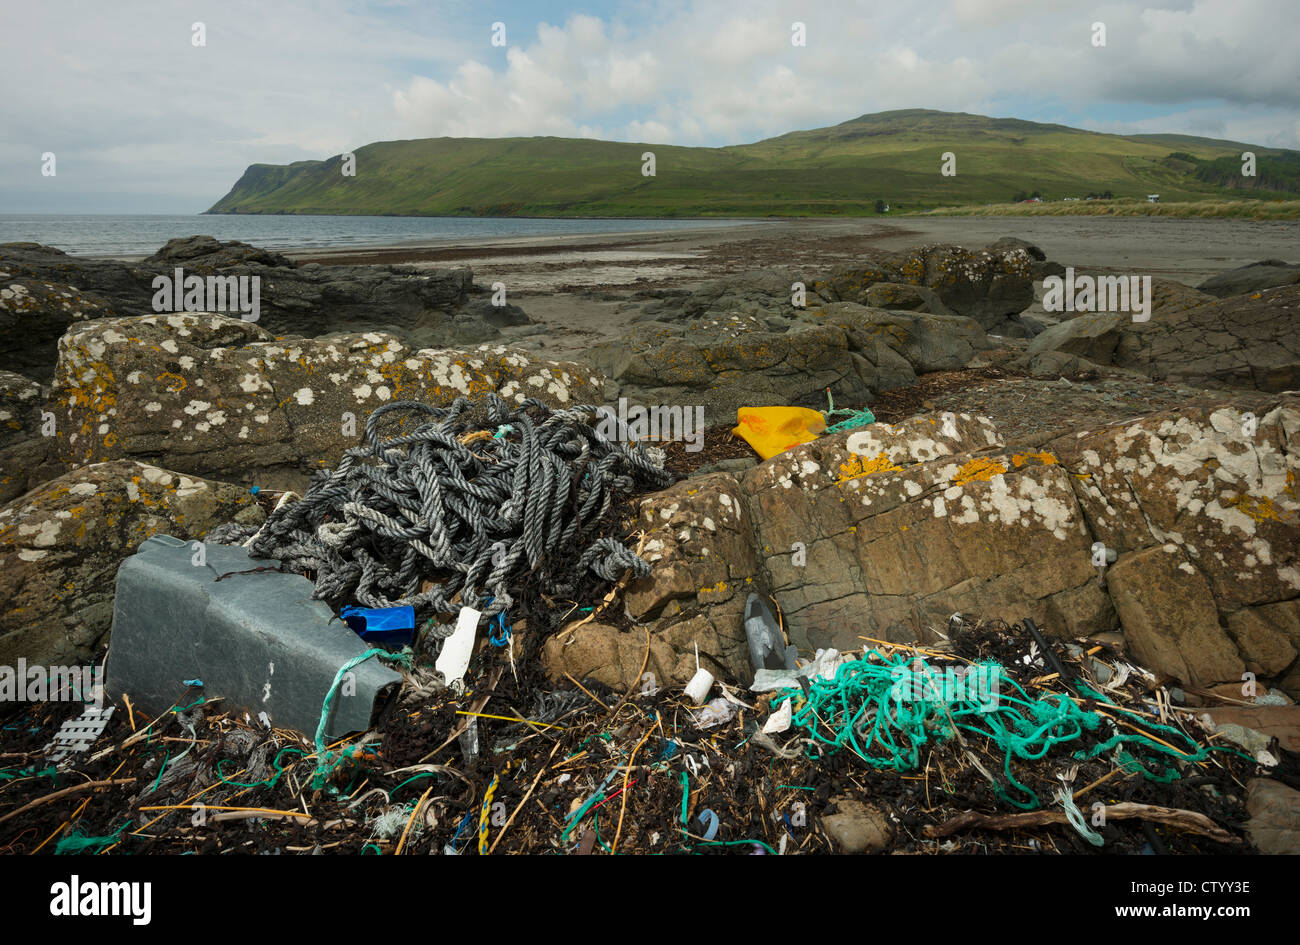 Sea landscape with plastic waste on the shore - Stock Image